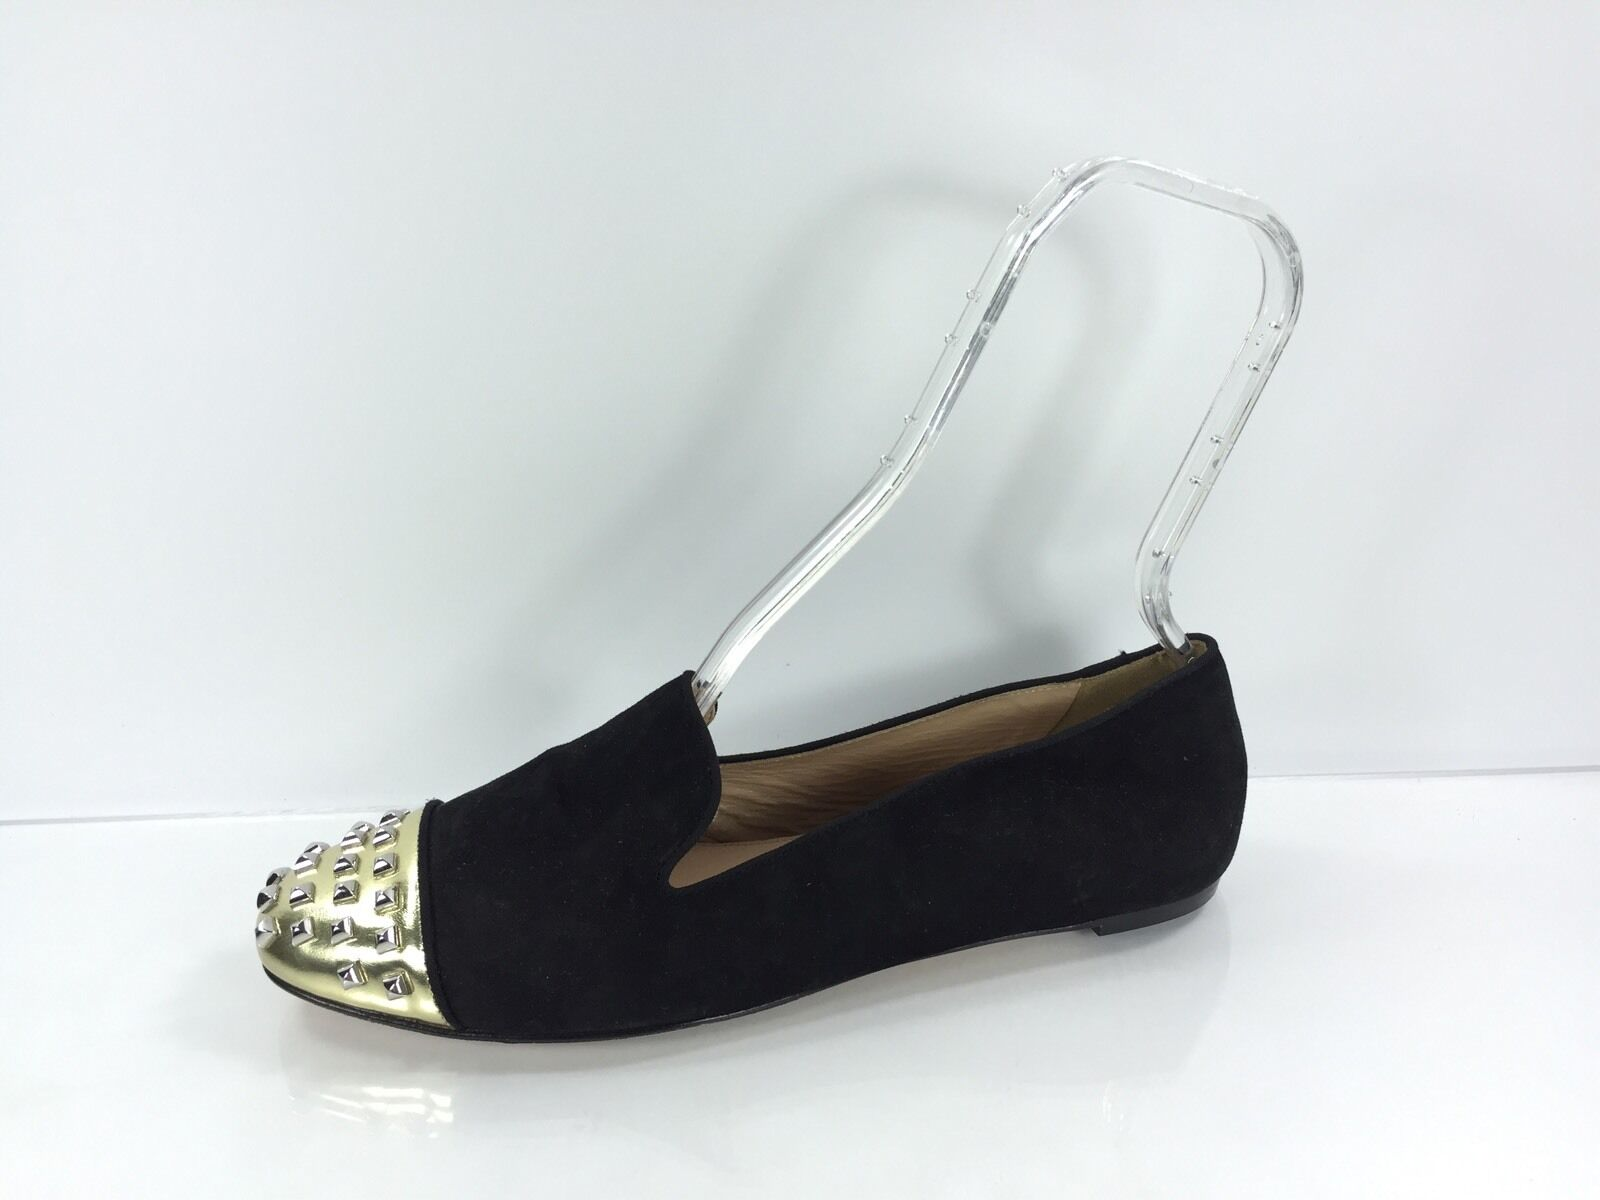 J Crew Women's Studded Black Leather Flats 9.5